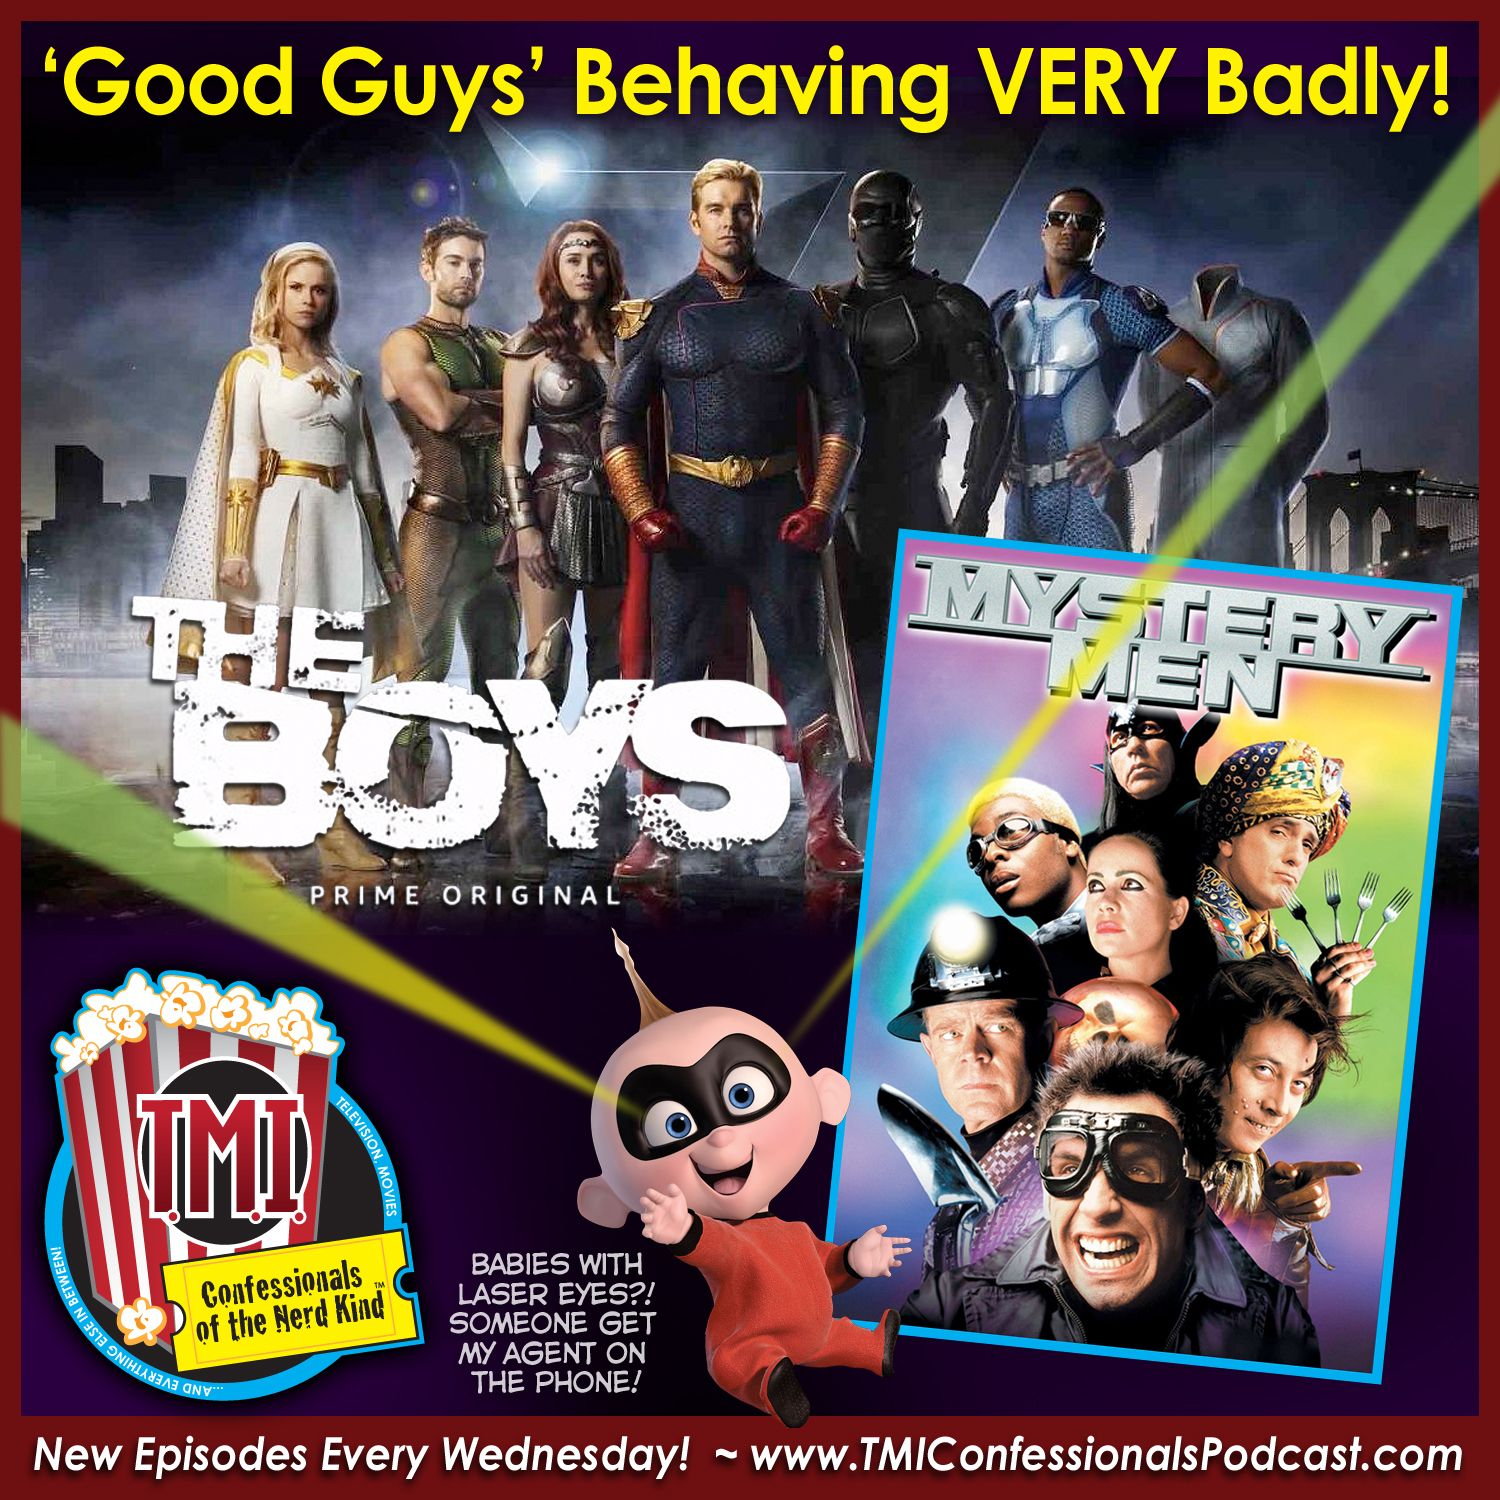 TMI Confessionals Of The Nerd Kind Podcast Movie Review